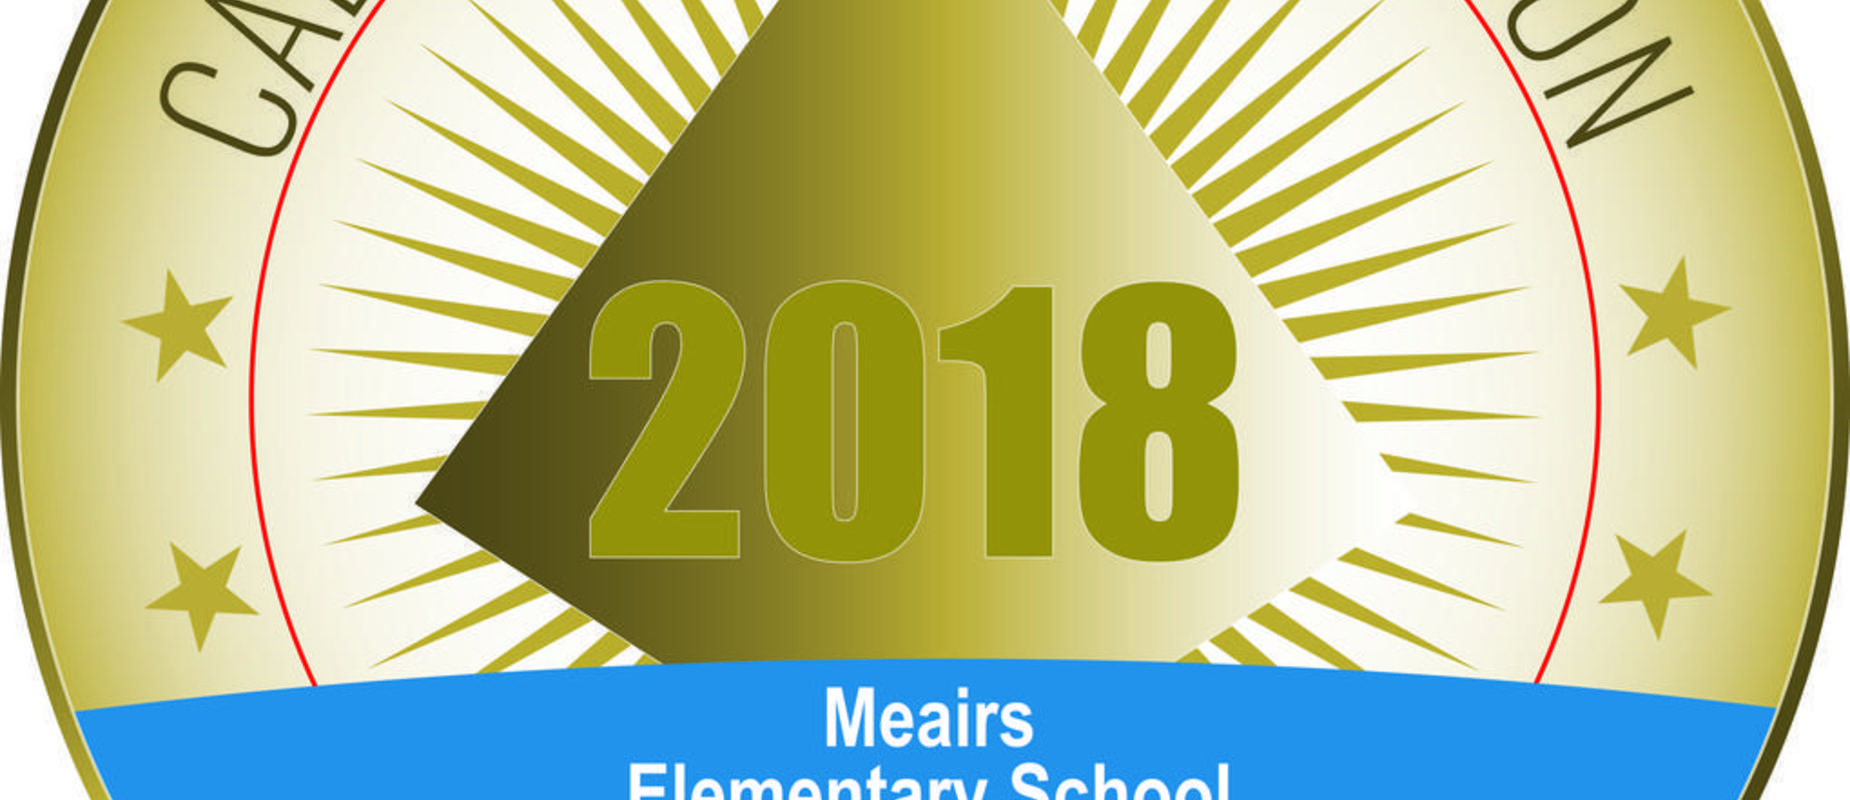 Meairs is an award winning school!